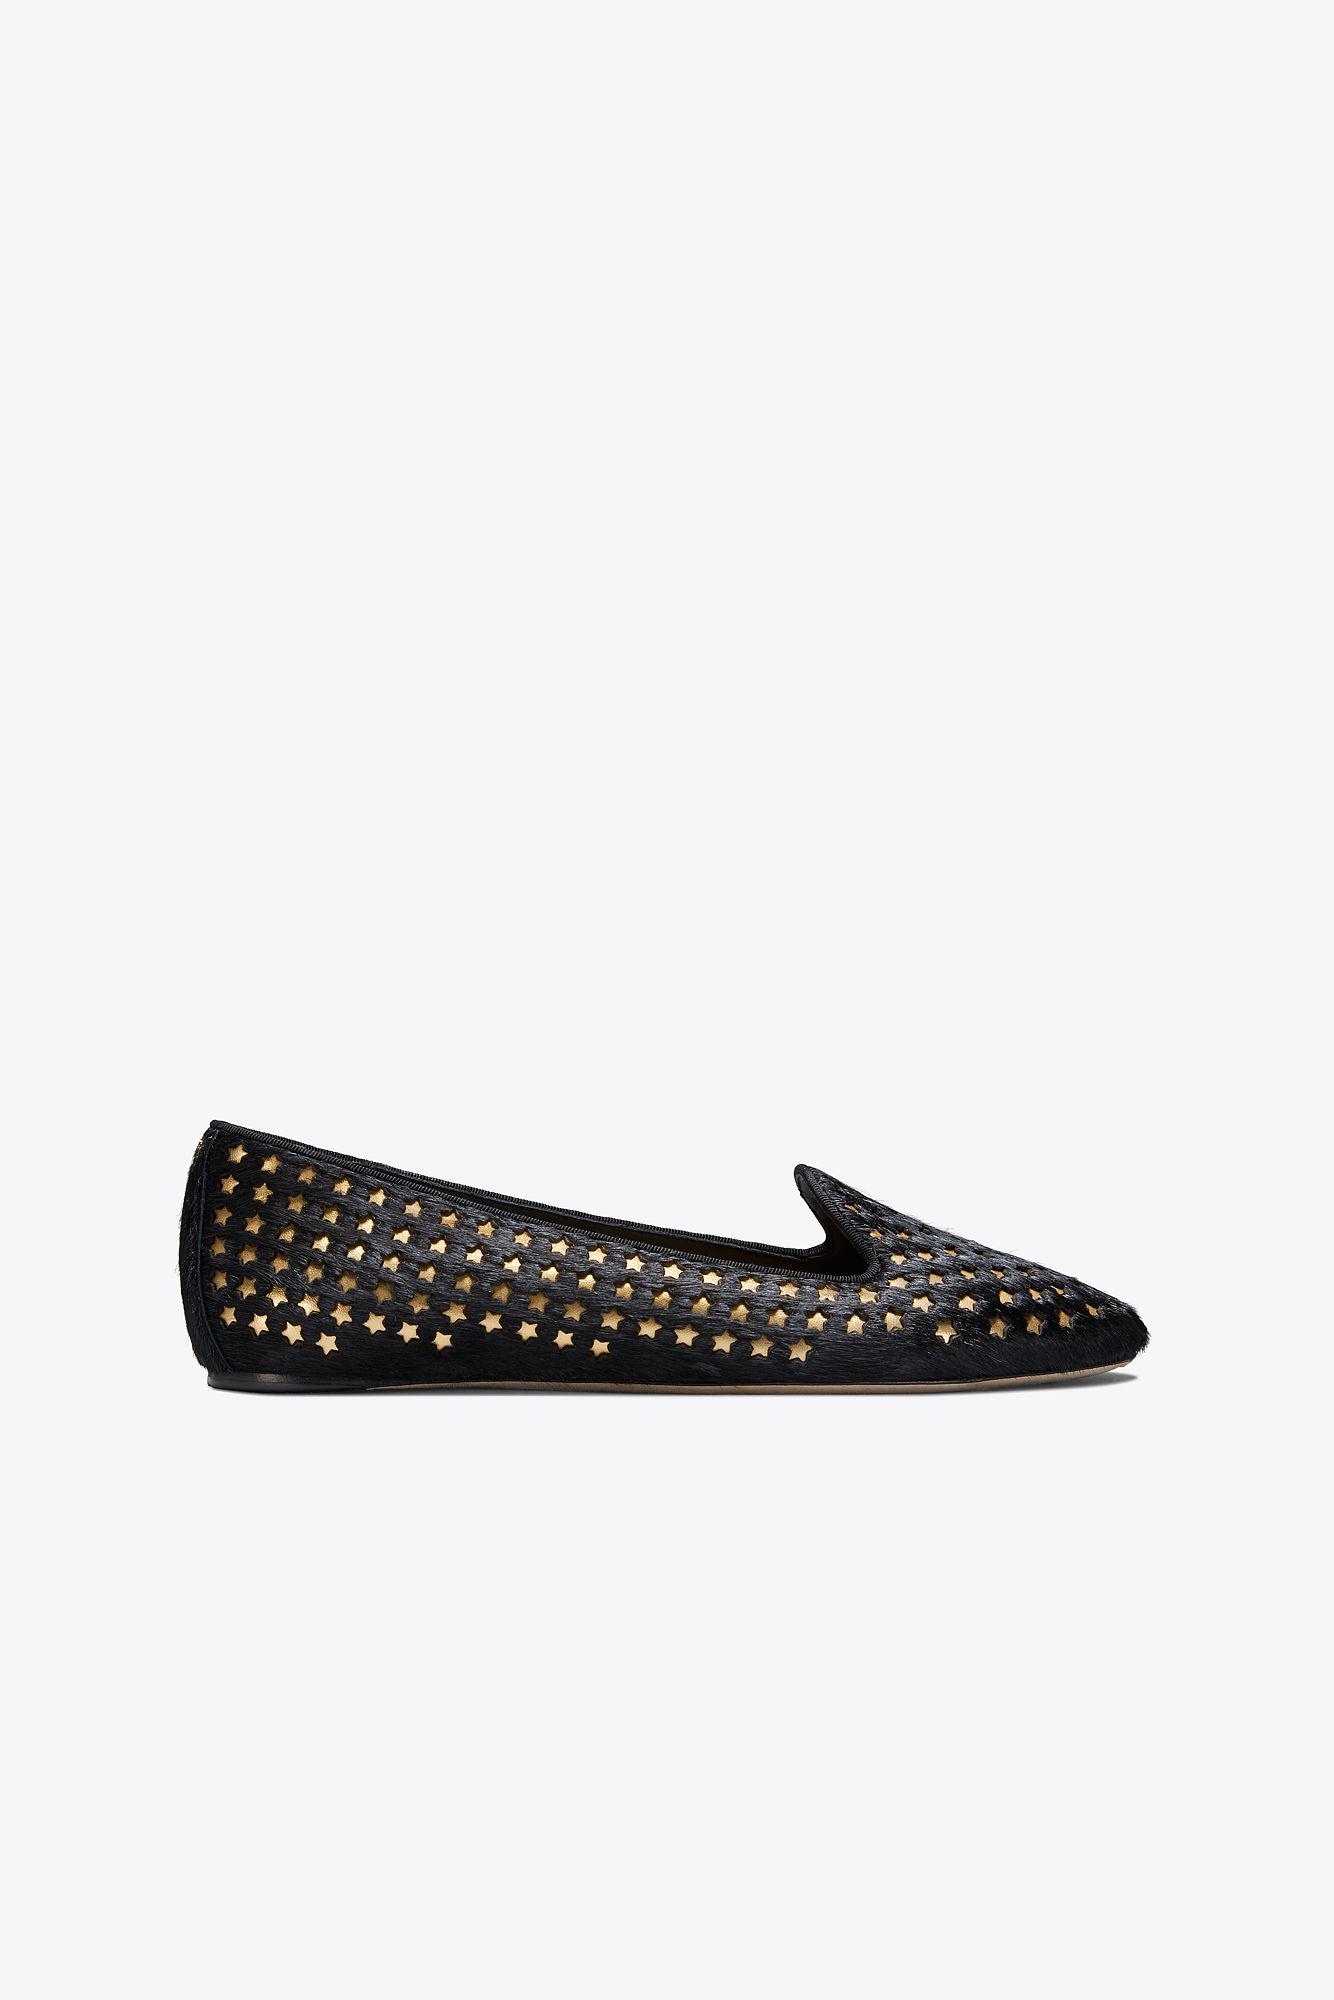 693f1aadedaf Lyst - Tory Burch Olympia Stud Loafers in Black - Save 32%